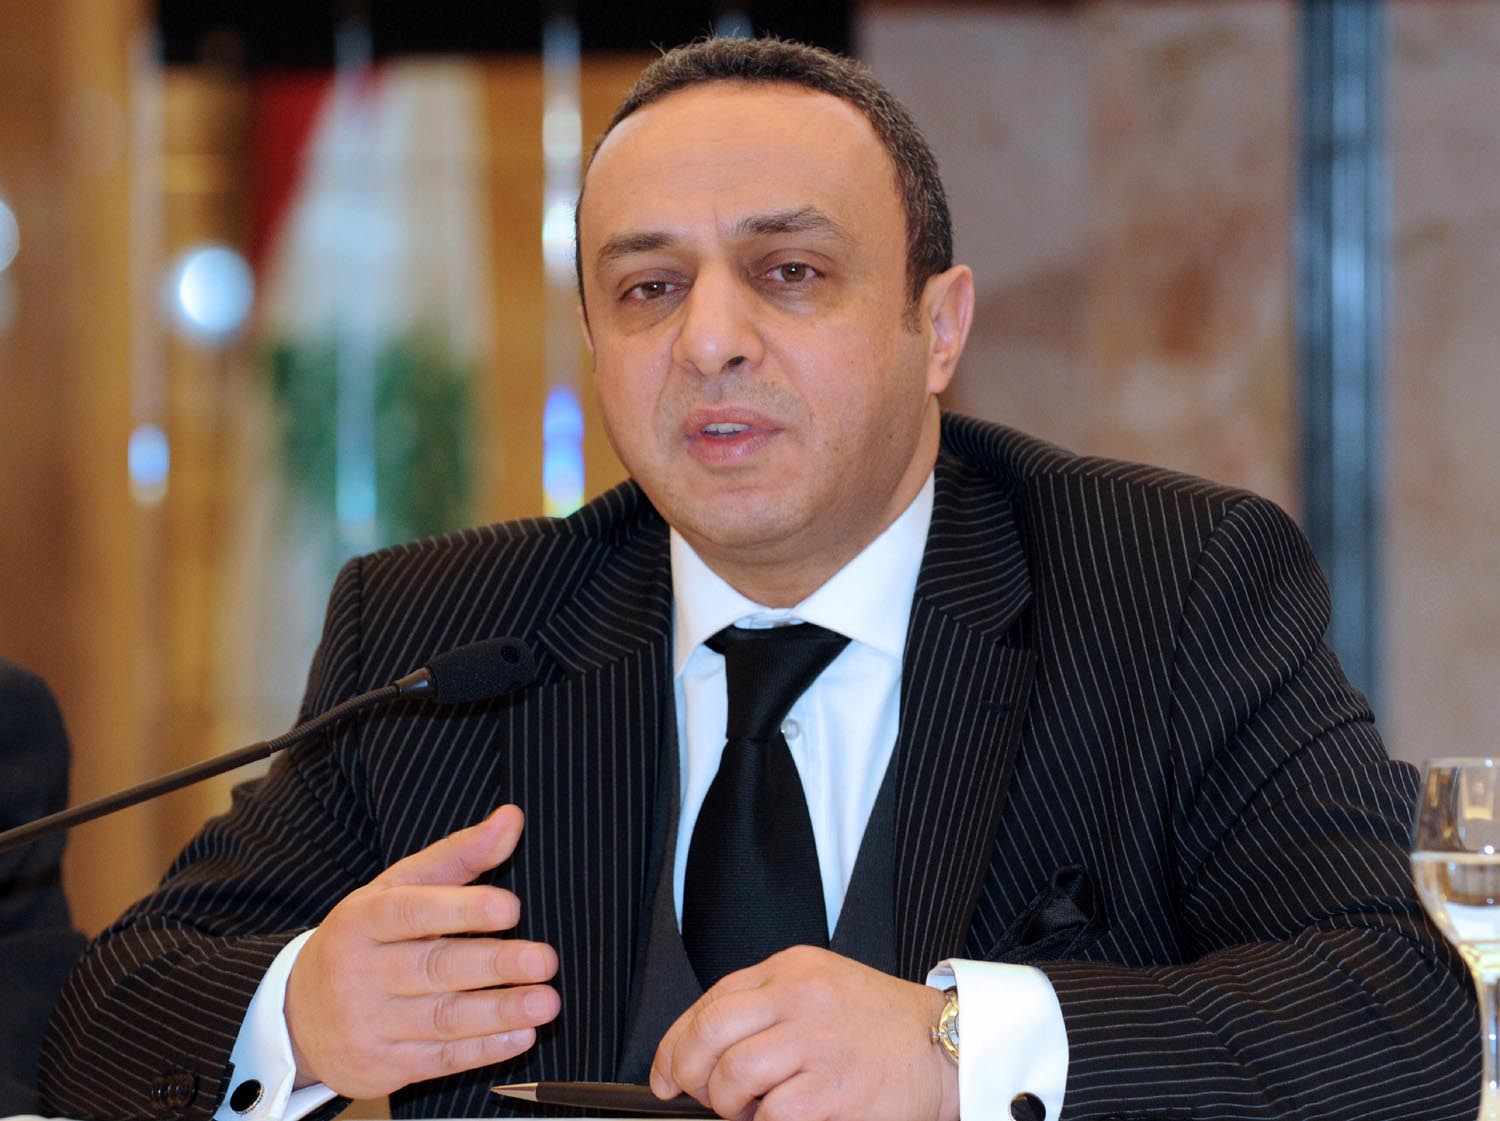 """SECRETARY-GENERAL OF THE FEDERATION OF ARAB BANKS, WISSAM FATTOUH: THE UNION OF ARAB BANKS ENCOURAGES THE ESTABLISHMENT OF A SPECIAL FUND TO CONFRONT """"CORONA"""" %D8%A3%D9%85%D9%8A%D9%86-%D8%B9%D8%A7%D9%85-%D8%A5%D8%AA%D8%AD%D8%A7%D8%AF-%D8%A7%D9%84%D9%85%D8%B5%D8%A7%D8%B1%D9%81-%D8%A7%D9%84%D8%B9%D8%B1%D8%A8%D9%8A%D8%A9-%D9%88%D8%B3%D8%A7%D9%85-%D9%81%D8%AA%D9%88%D8%AD-%D8%A7%D8%AA%D8%AD%D8%A7%D8%AF-%D8%A7%D9%84%D9%85%D8%B5%D8%A7%D8%B1%D9%81-%D8%A7%D9%84%D8%B9%D8%B1%D8%A8%D9%8A%D9%91%D8%A9-%D9%8A%D9%8F%D8%B4%D8%AC%D9%91%D8%B9-%D8%B9%D9%84%D9%89-%D8%A5%D9%86%D8%B4%D8%A7%D8%A1-%D8%B5%D9%86%D8%AF%D9%88%D9%82-%D8%AE%D8%A7%D8%B5-%D9%84%D9%85%D9%88%D8%A7%D8%AC%D9%87%D8%A9-%C2%AB%D9%83%D9%88%D8%B1%D9%88%D9%86%D8%A7%C2%BB"""